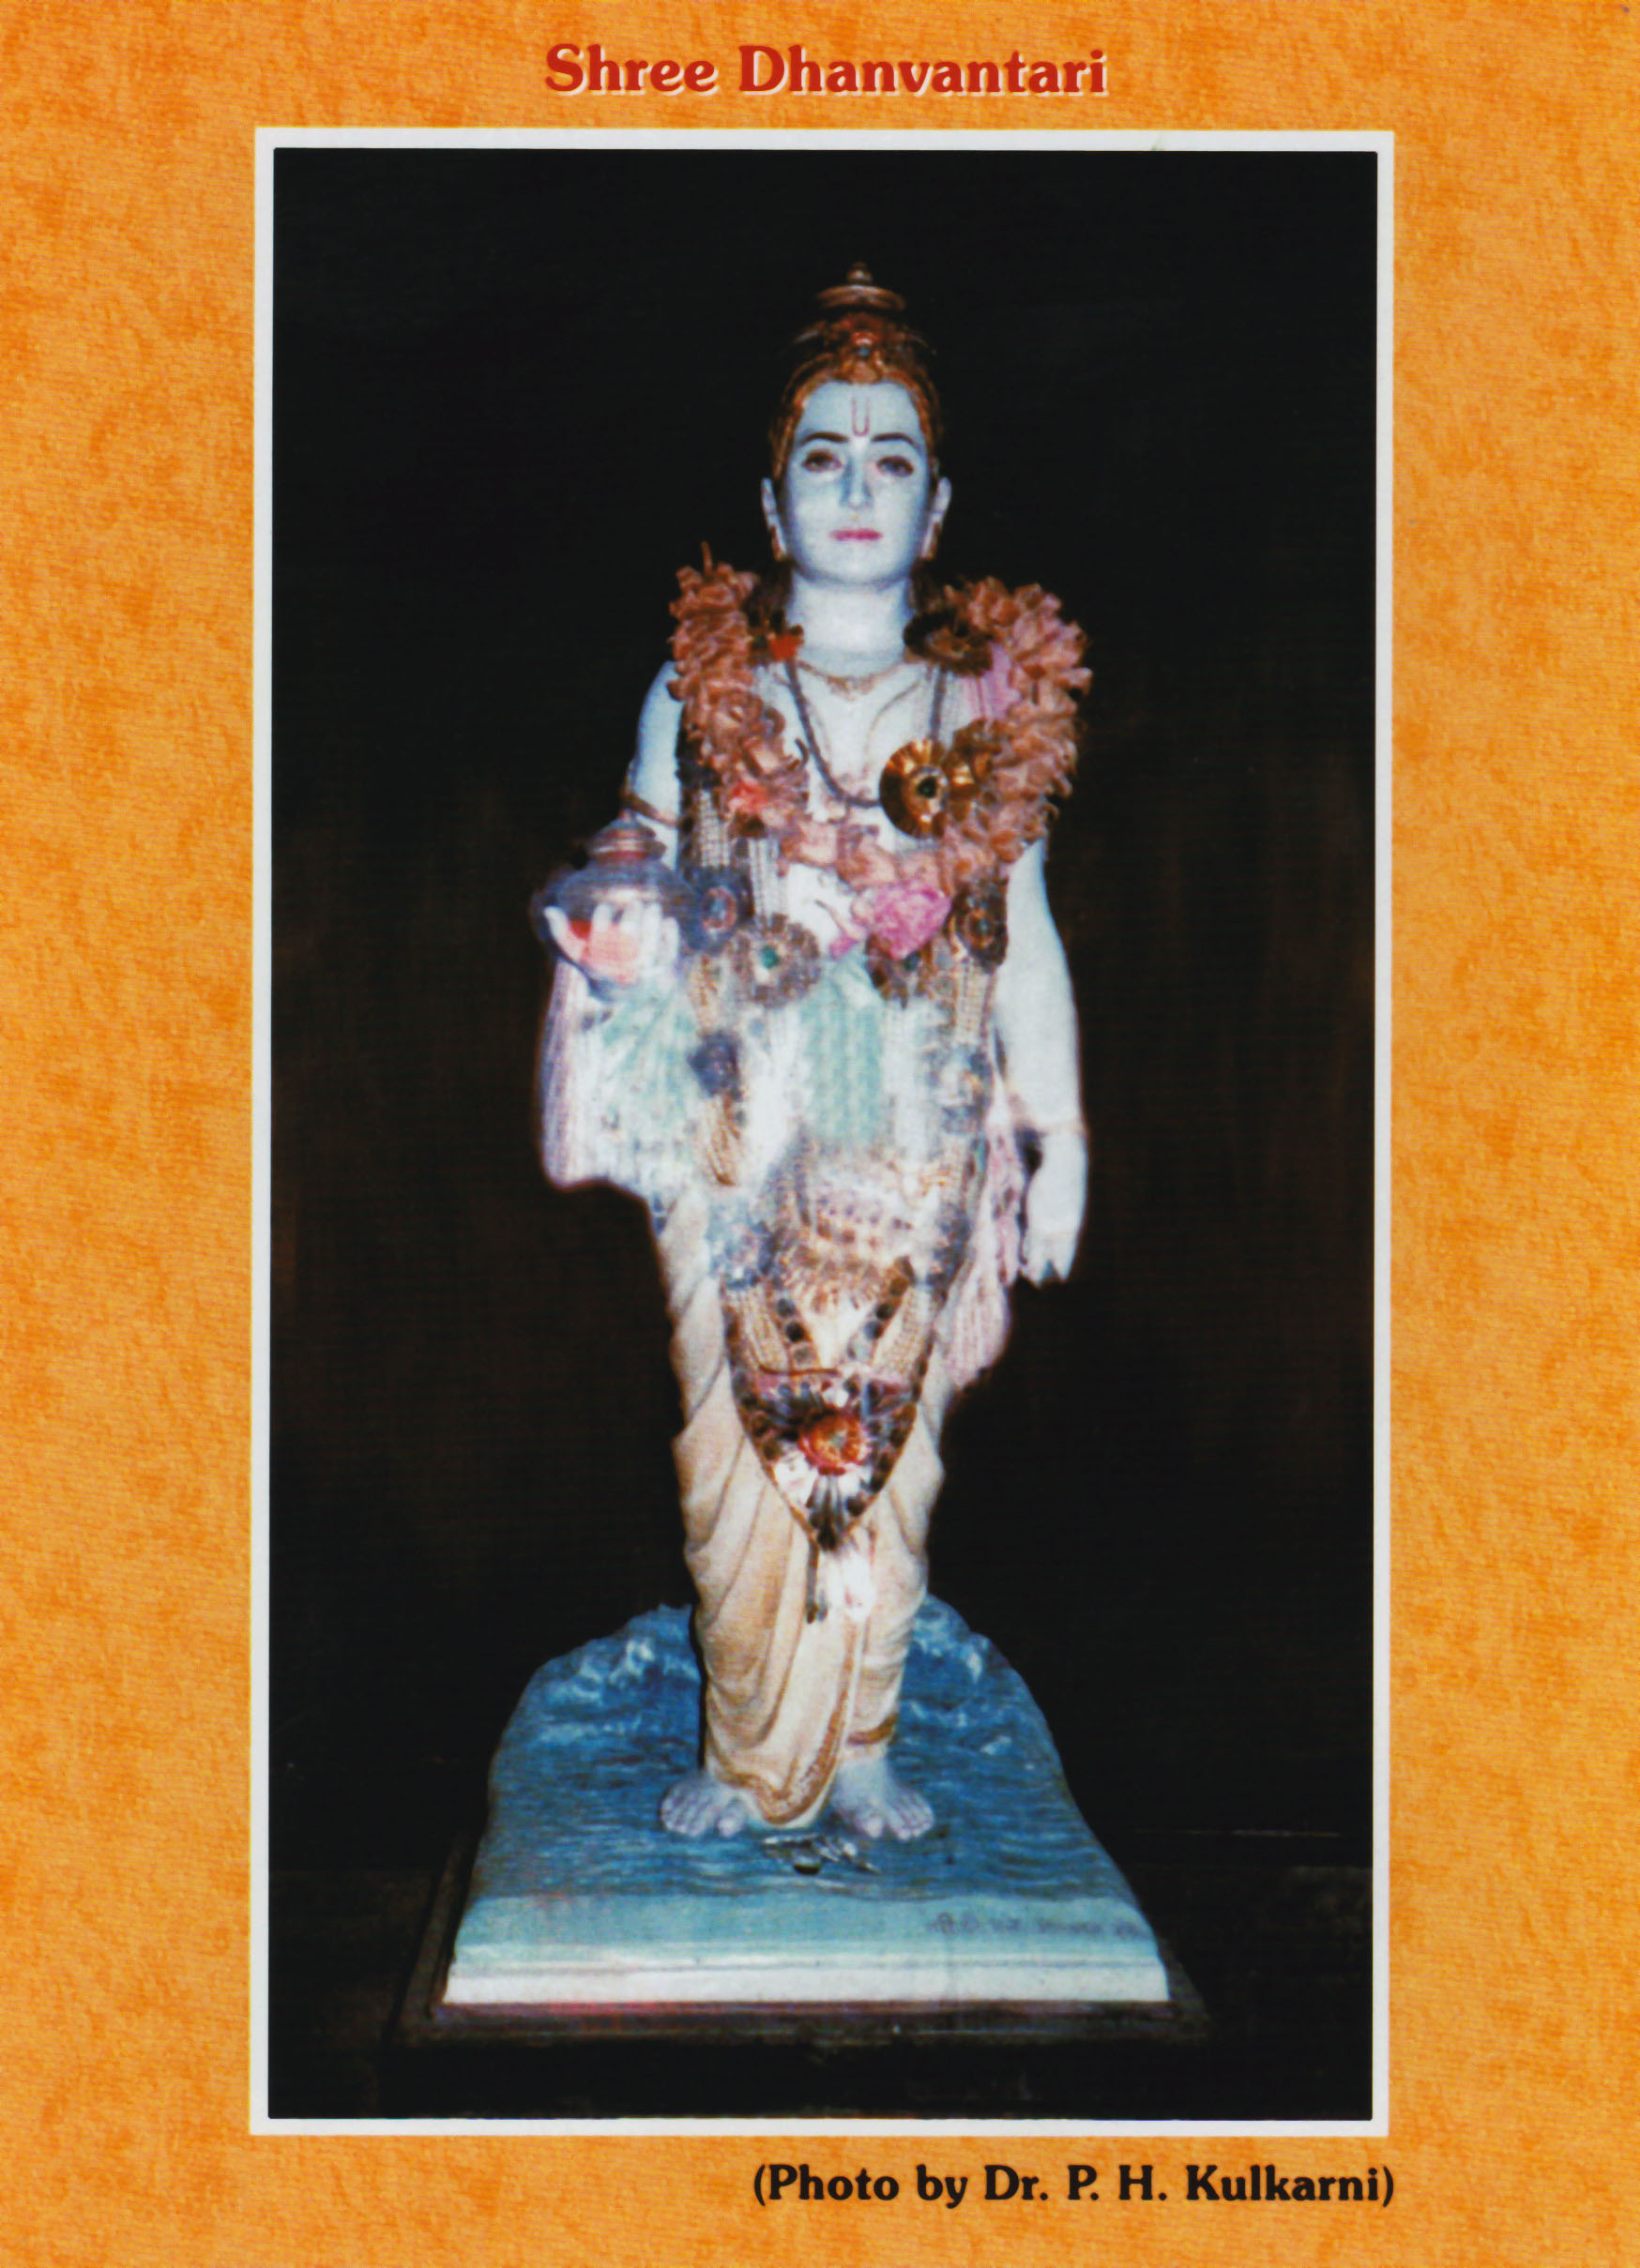 shree dhanvantari